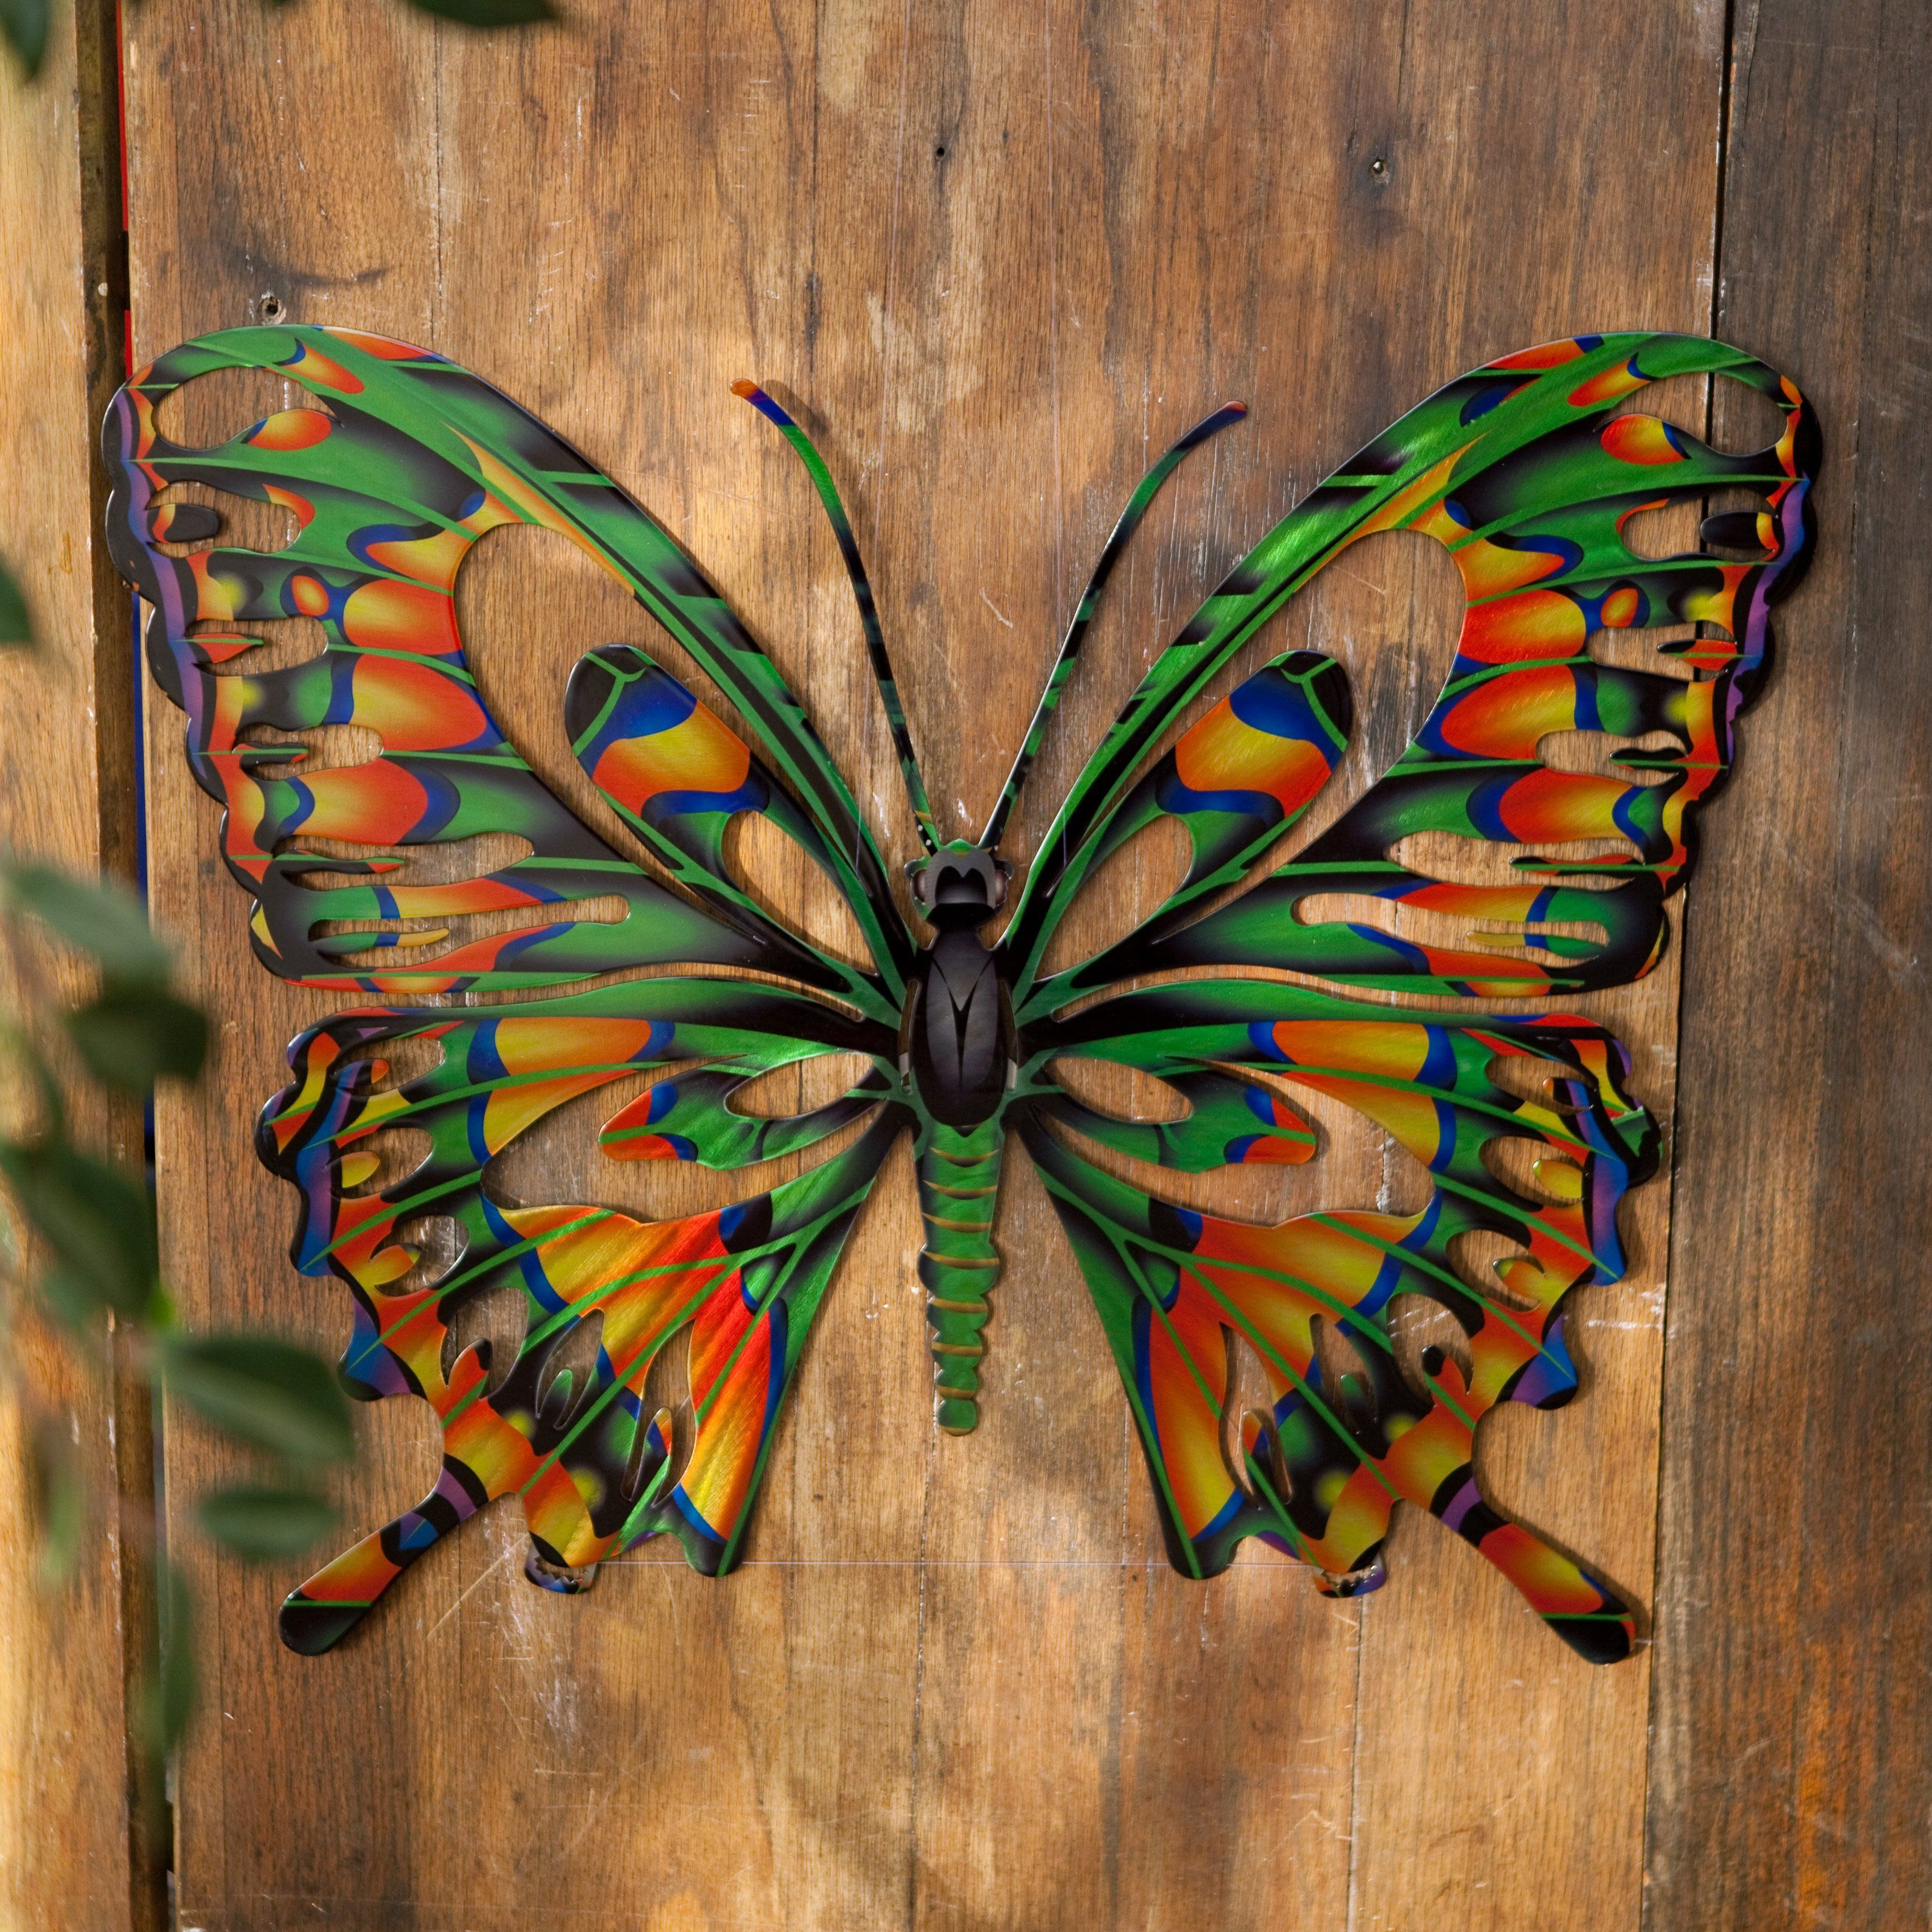 Metal Butterfly Wall Decoration : Have to it d butterfly metal outdoor wall art